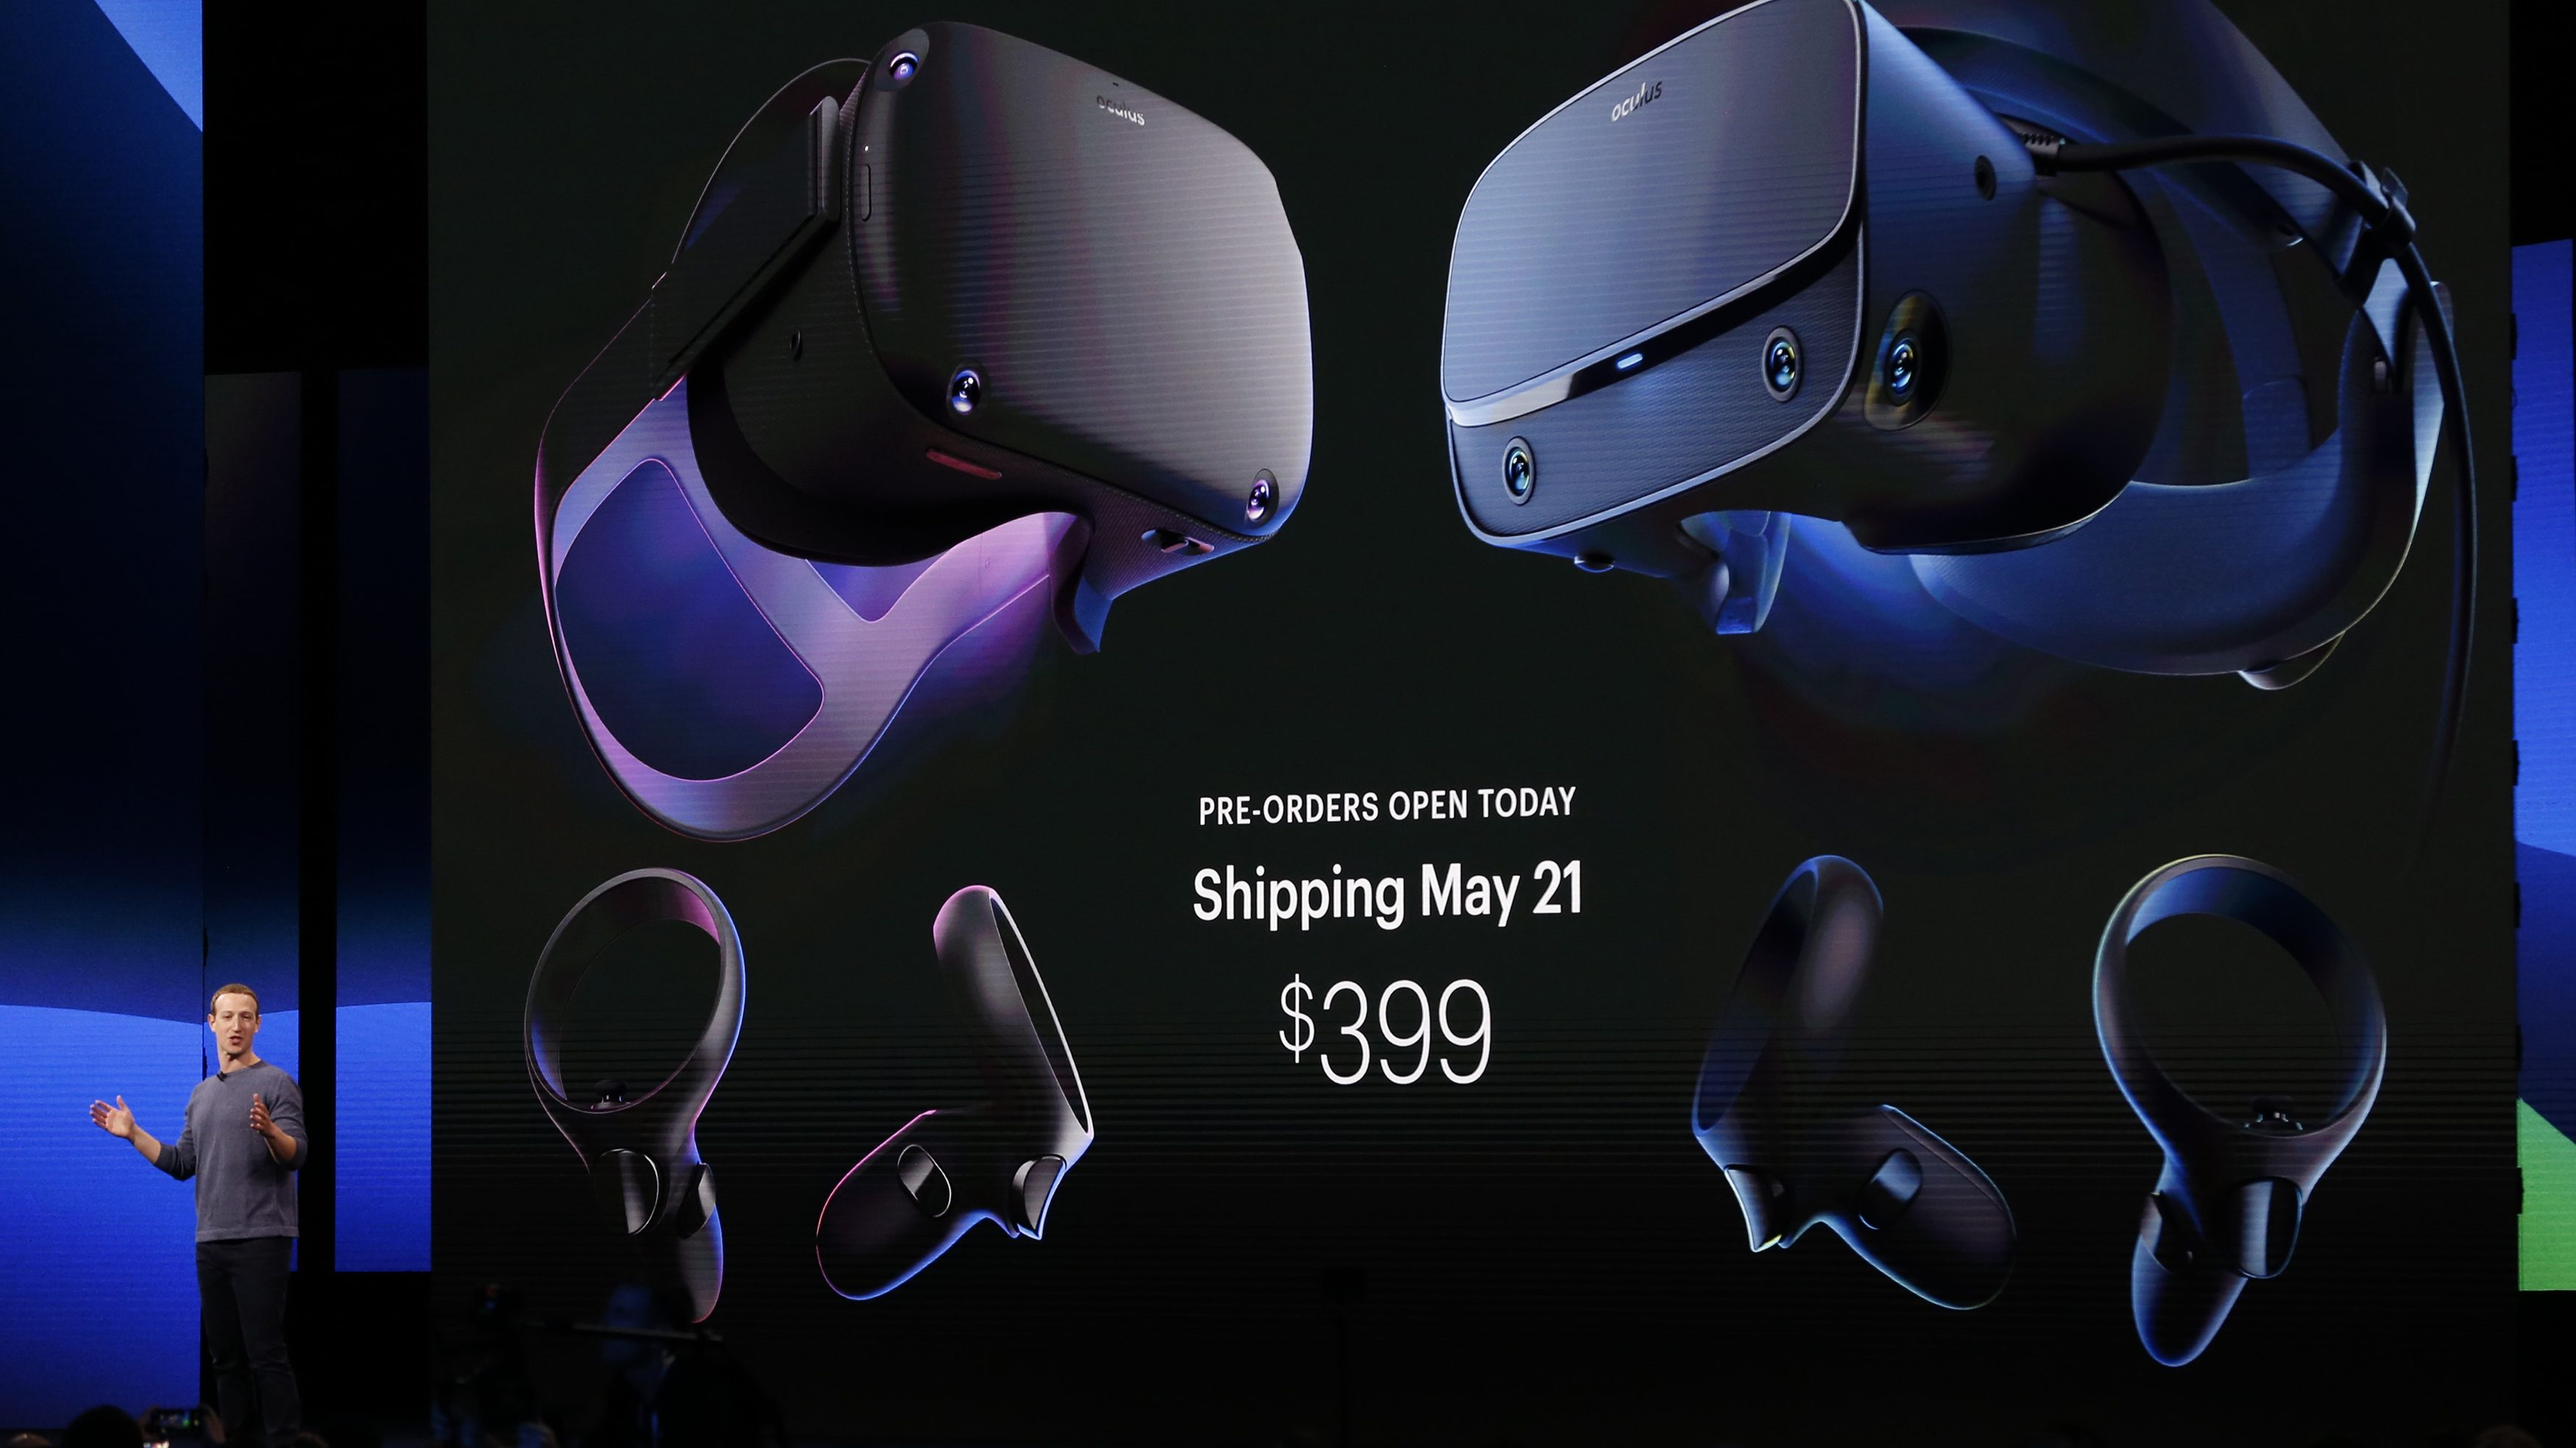 Facebook CEO Mark Zuckerberg speaks about Oculus virtual reality headsets.